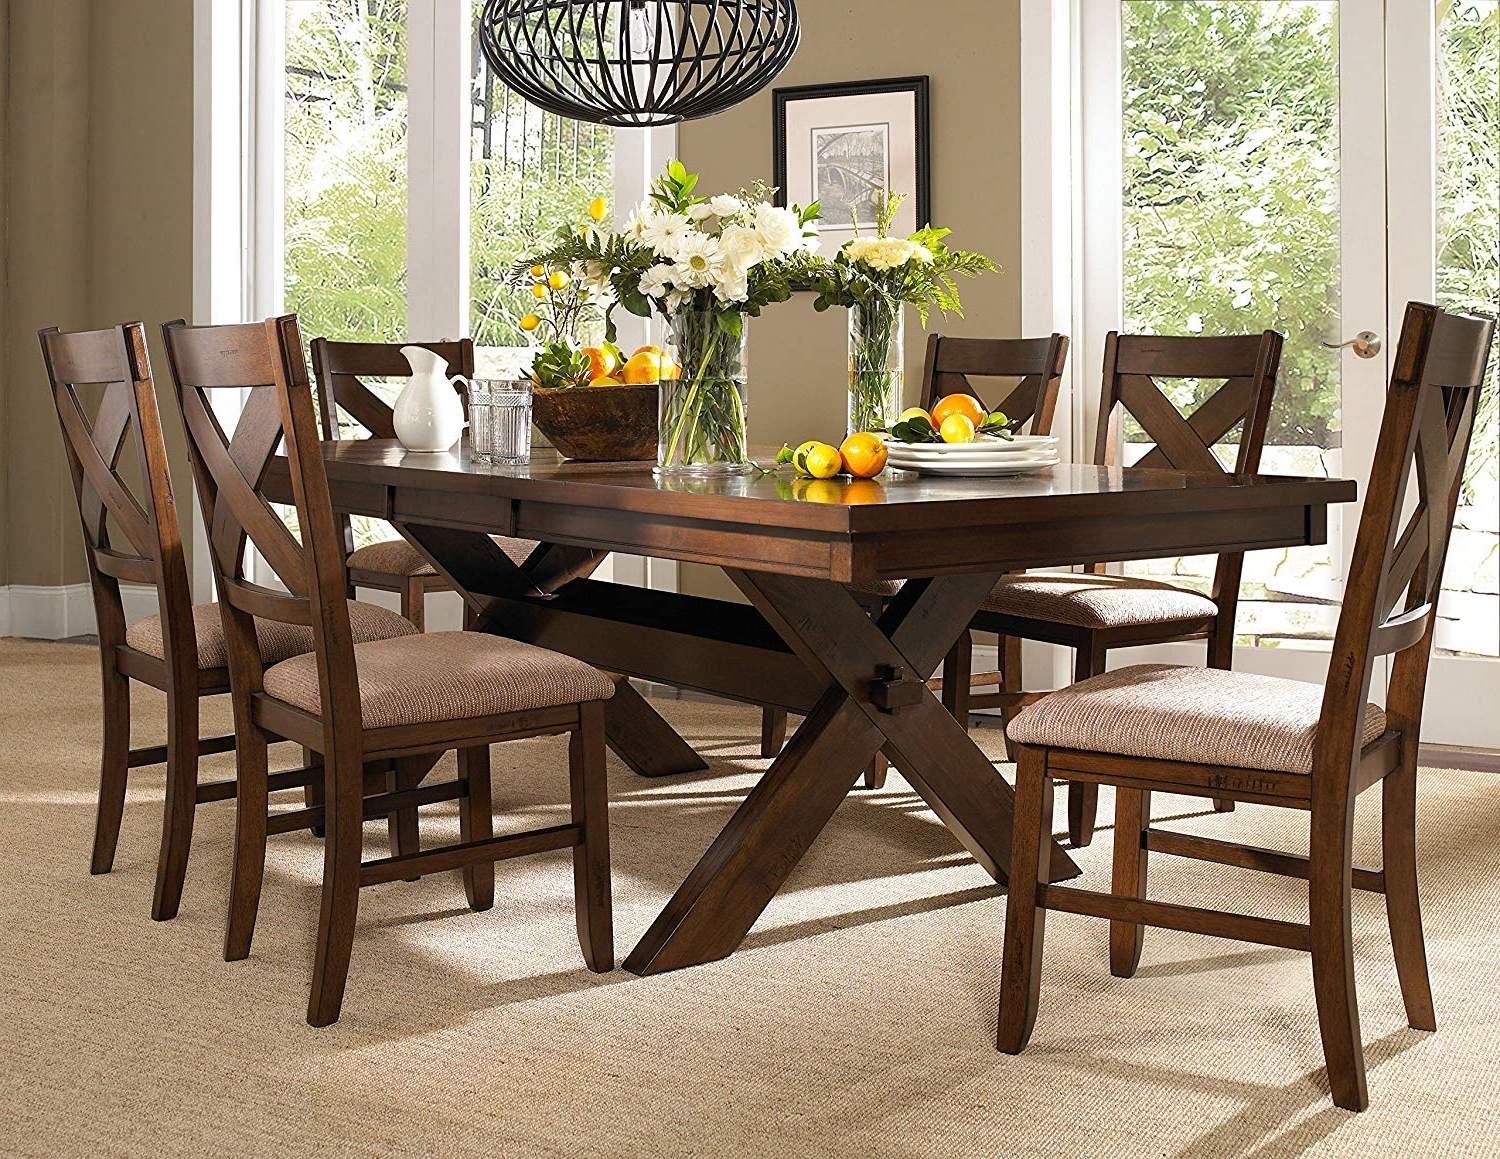 Newest Amazon - Powell 713-417M2 7 Piece Wooden Kraven Dining Set with Wood Dining Tables And 6 Chairs